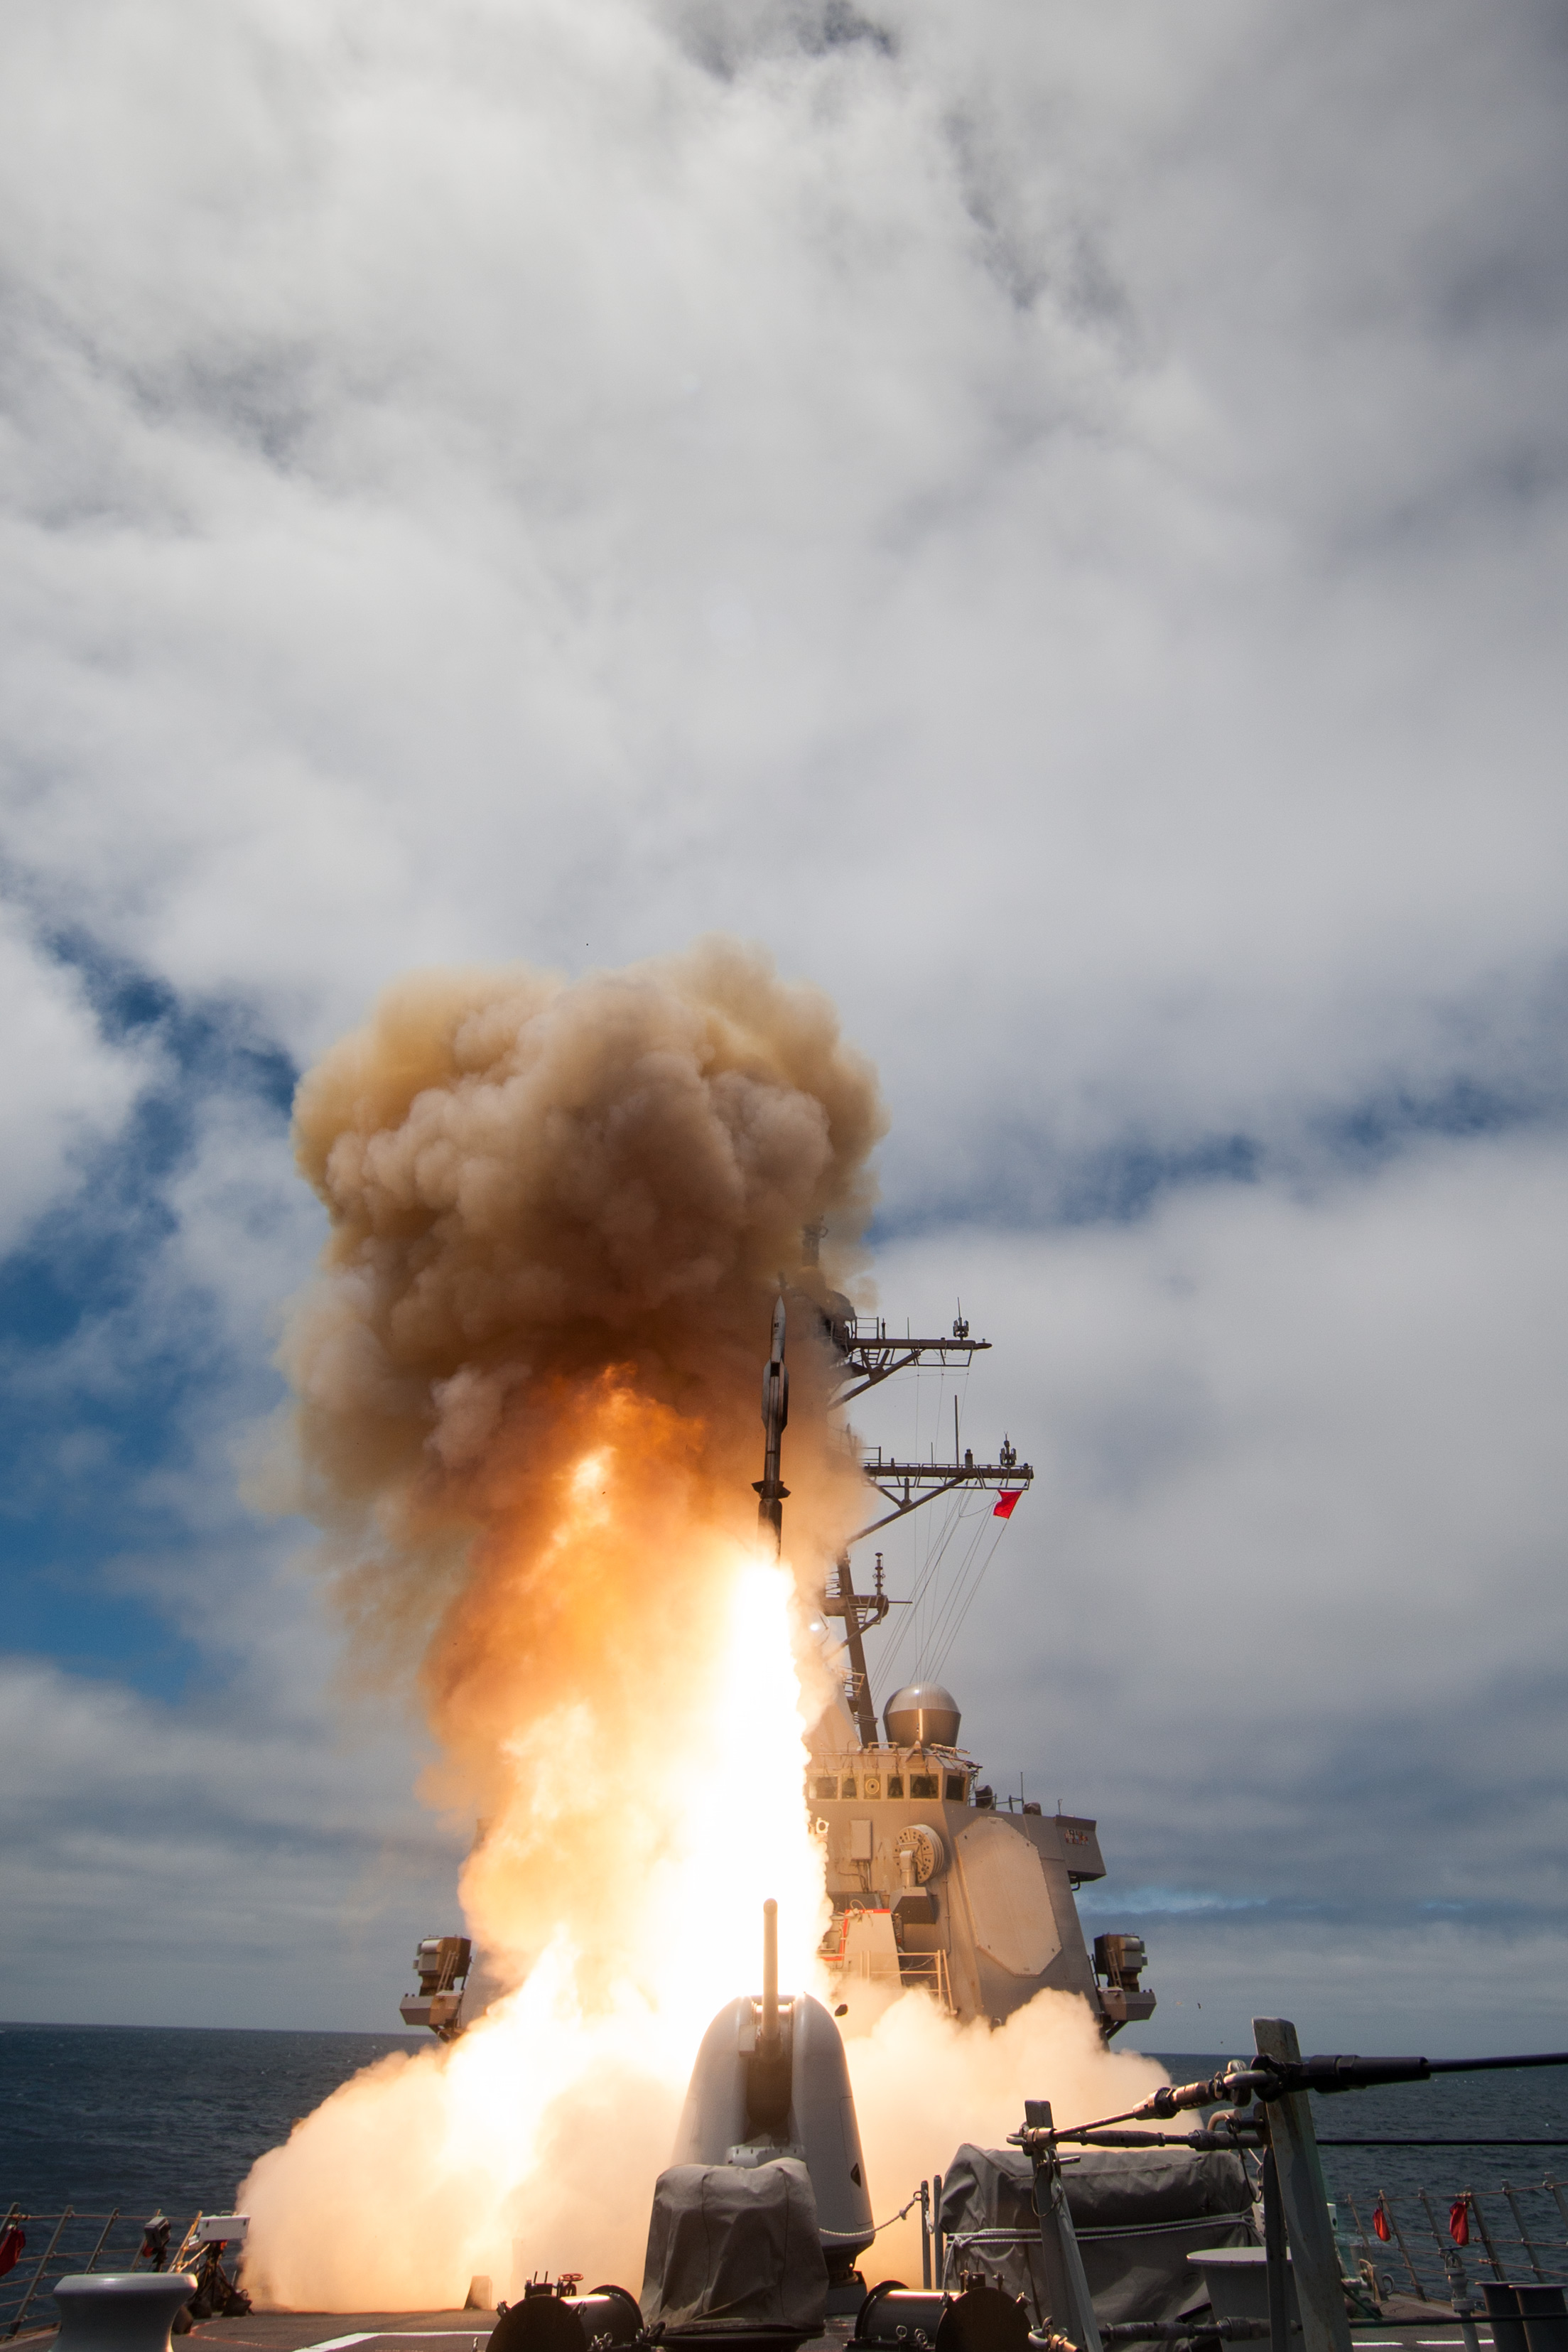 The Arleigh-Burke class guided-missile destroyer USS John Paul Jones (DDG 53) launches a Standard Missile-6 (SM-6) during a live-fire test of the ship's Aegis weapons system in June 2014. US Navy photo.